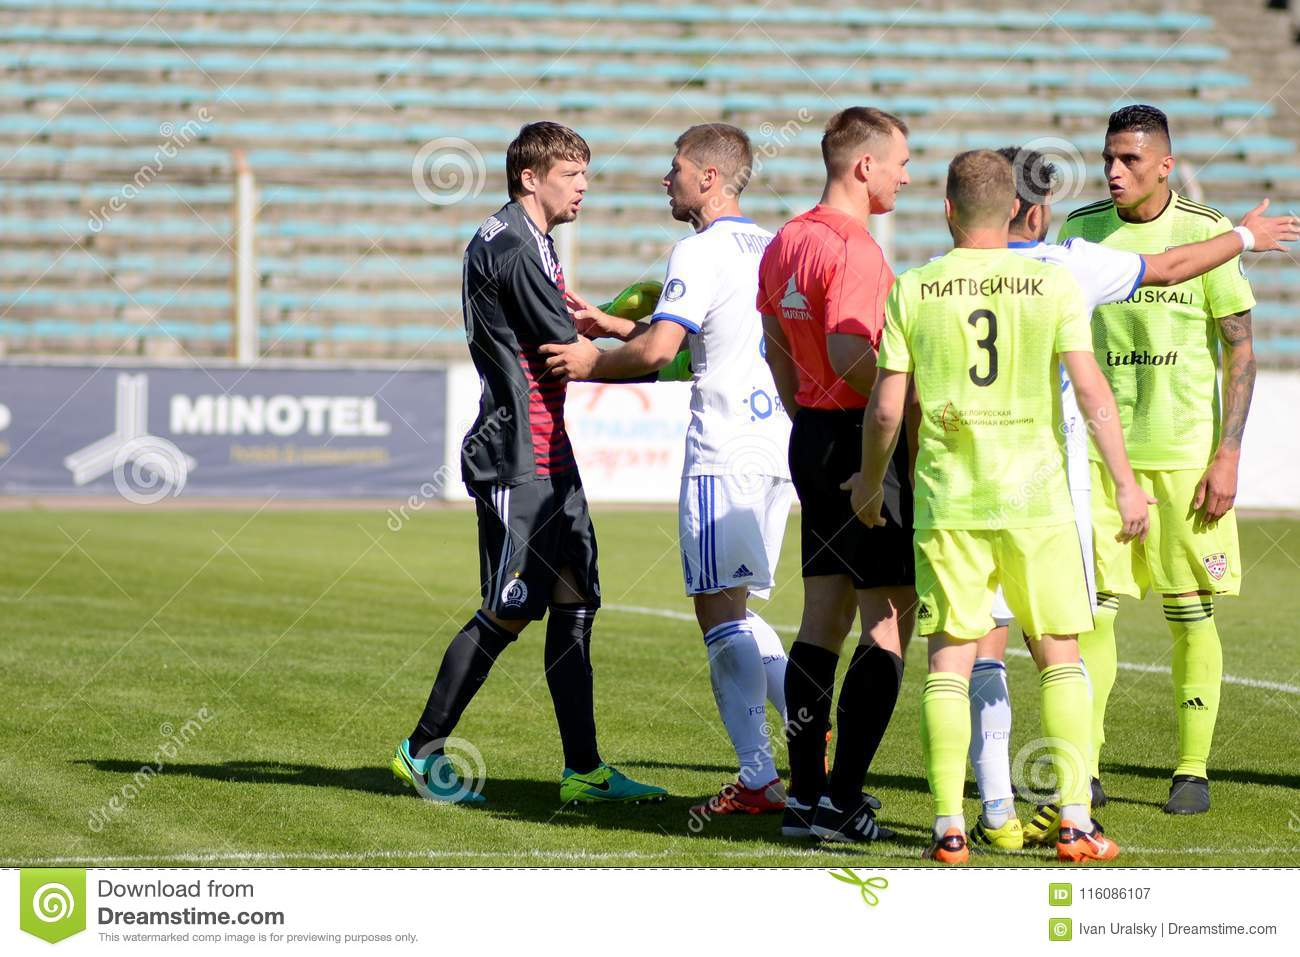 MINSK, BELARUS - MAY 6, 2018: Soccer players argue, conflict during the Belarusian Premier League football match between